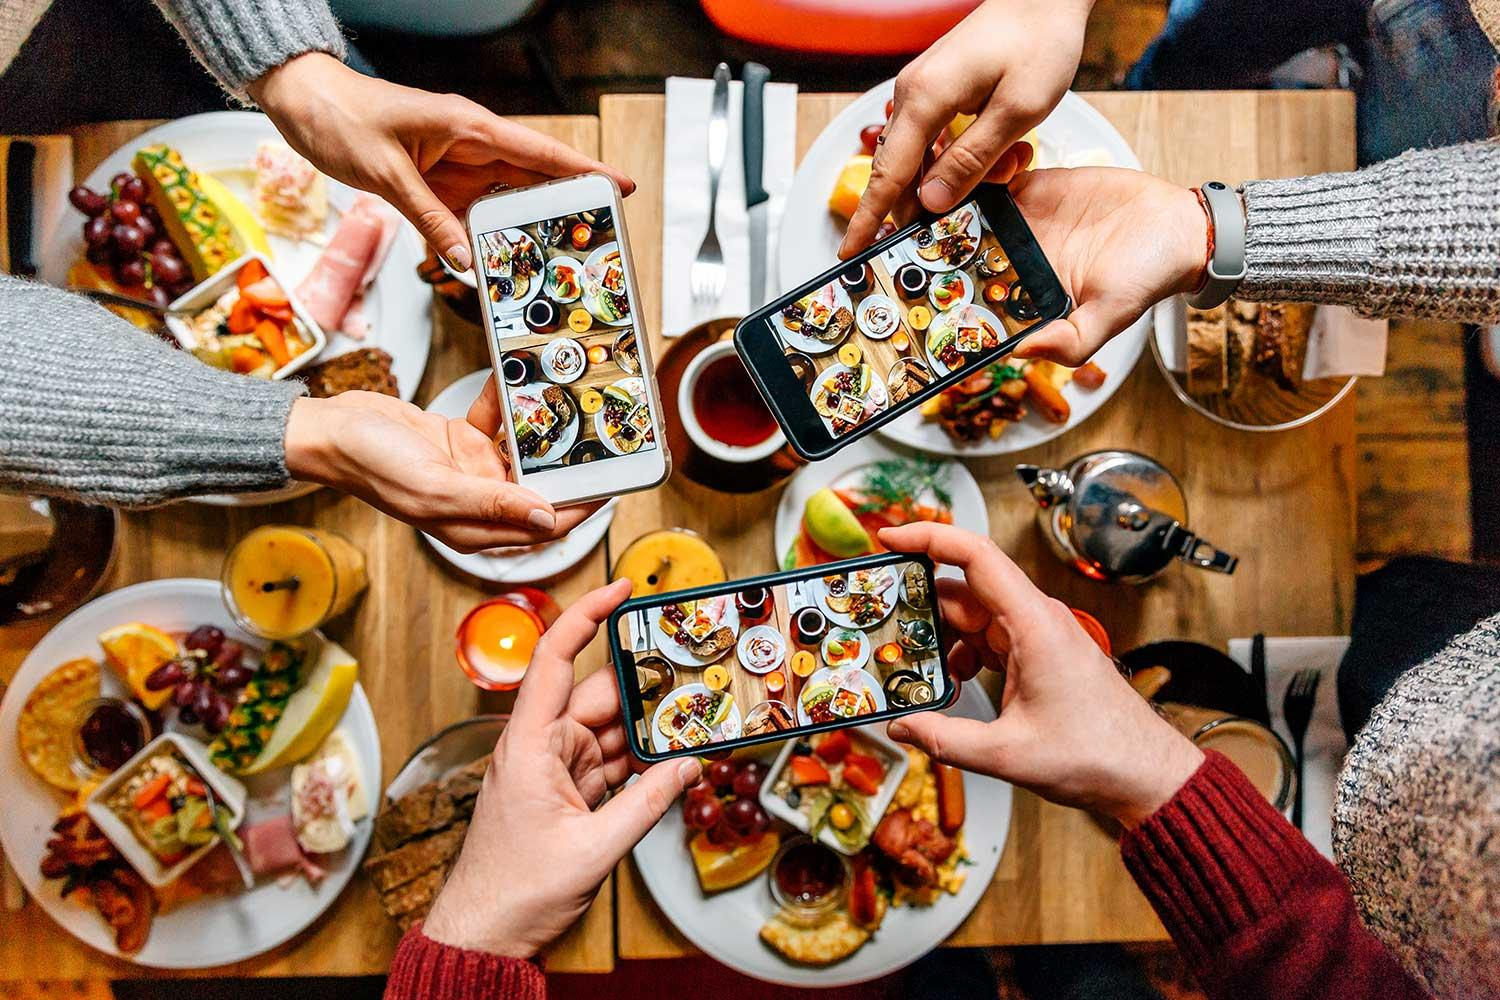 Friends taking pictures of food